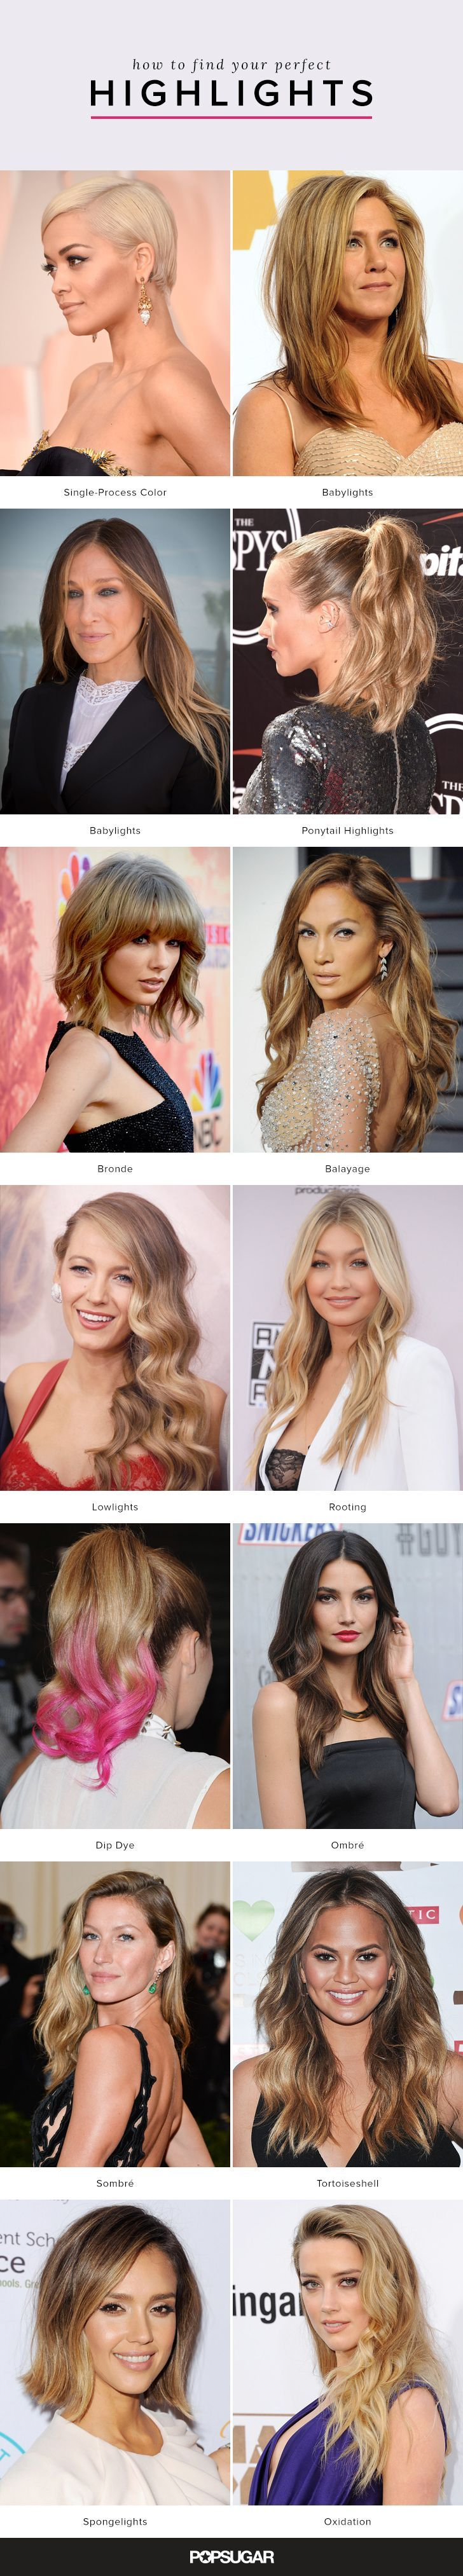 Ombré? Balayage? Bronde? There are so many hair color terms floating around, and it all sounds French to us! No one expects you to be a professional when you call to make a bleach appointment. But knowing a few of the key buzzwords can be the defining difference between getting a Cara Delevingne ombré and a Pamela Anderson platinum (yikes!). We spoke with L'Oréal Paris celebrity colorist Kari Hill to break down all the techniques.